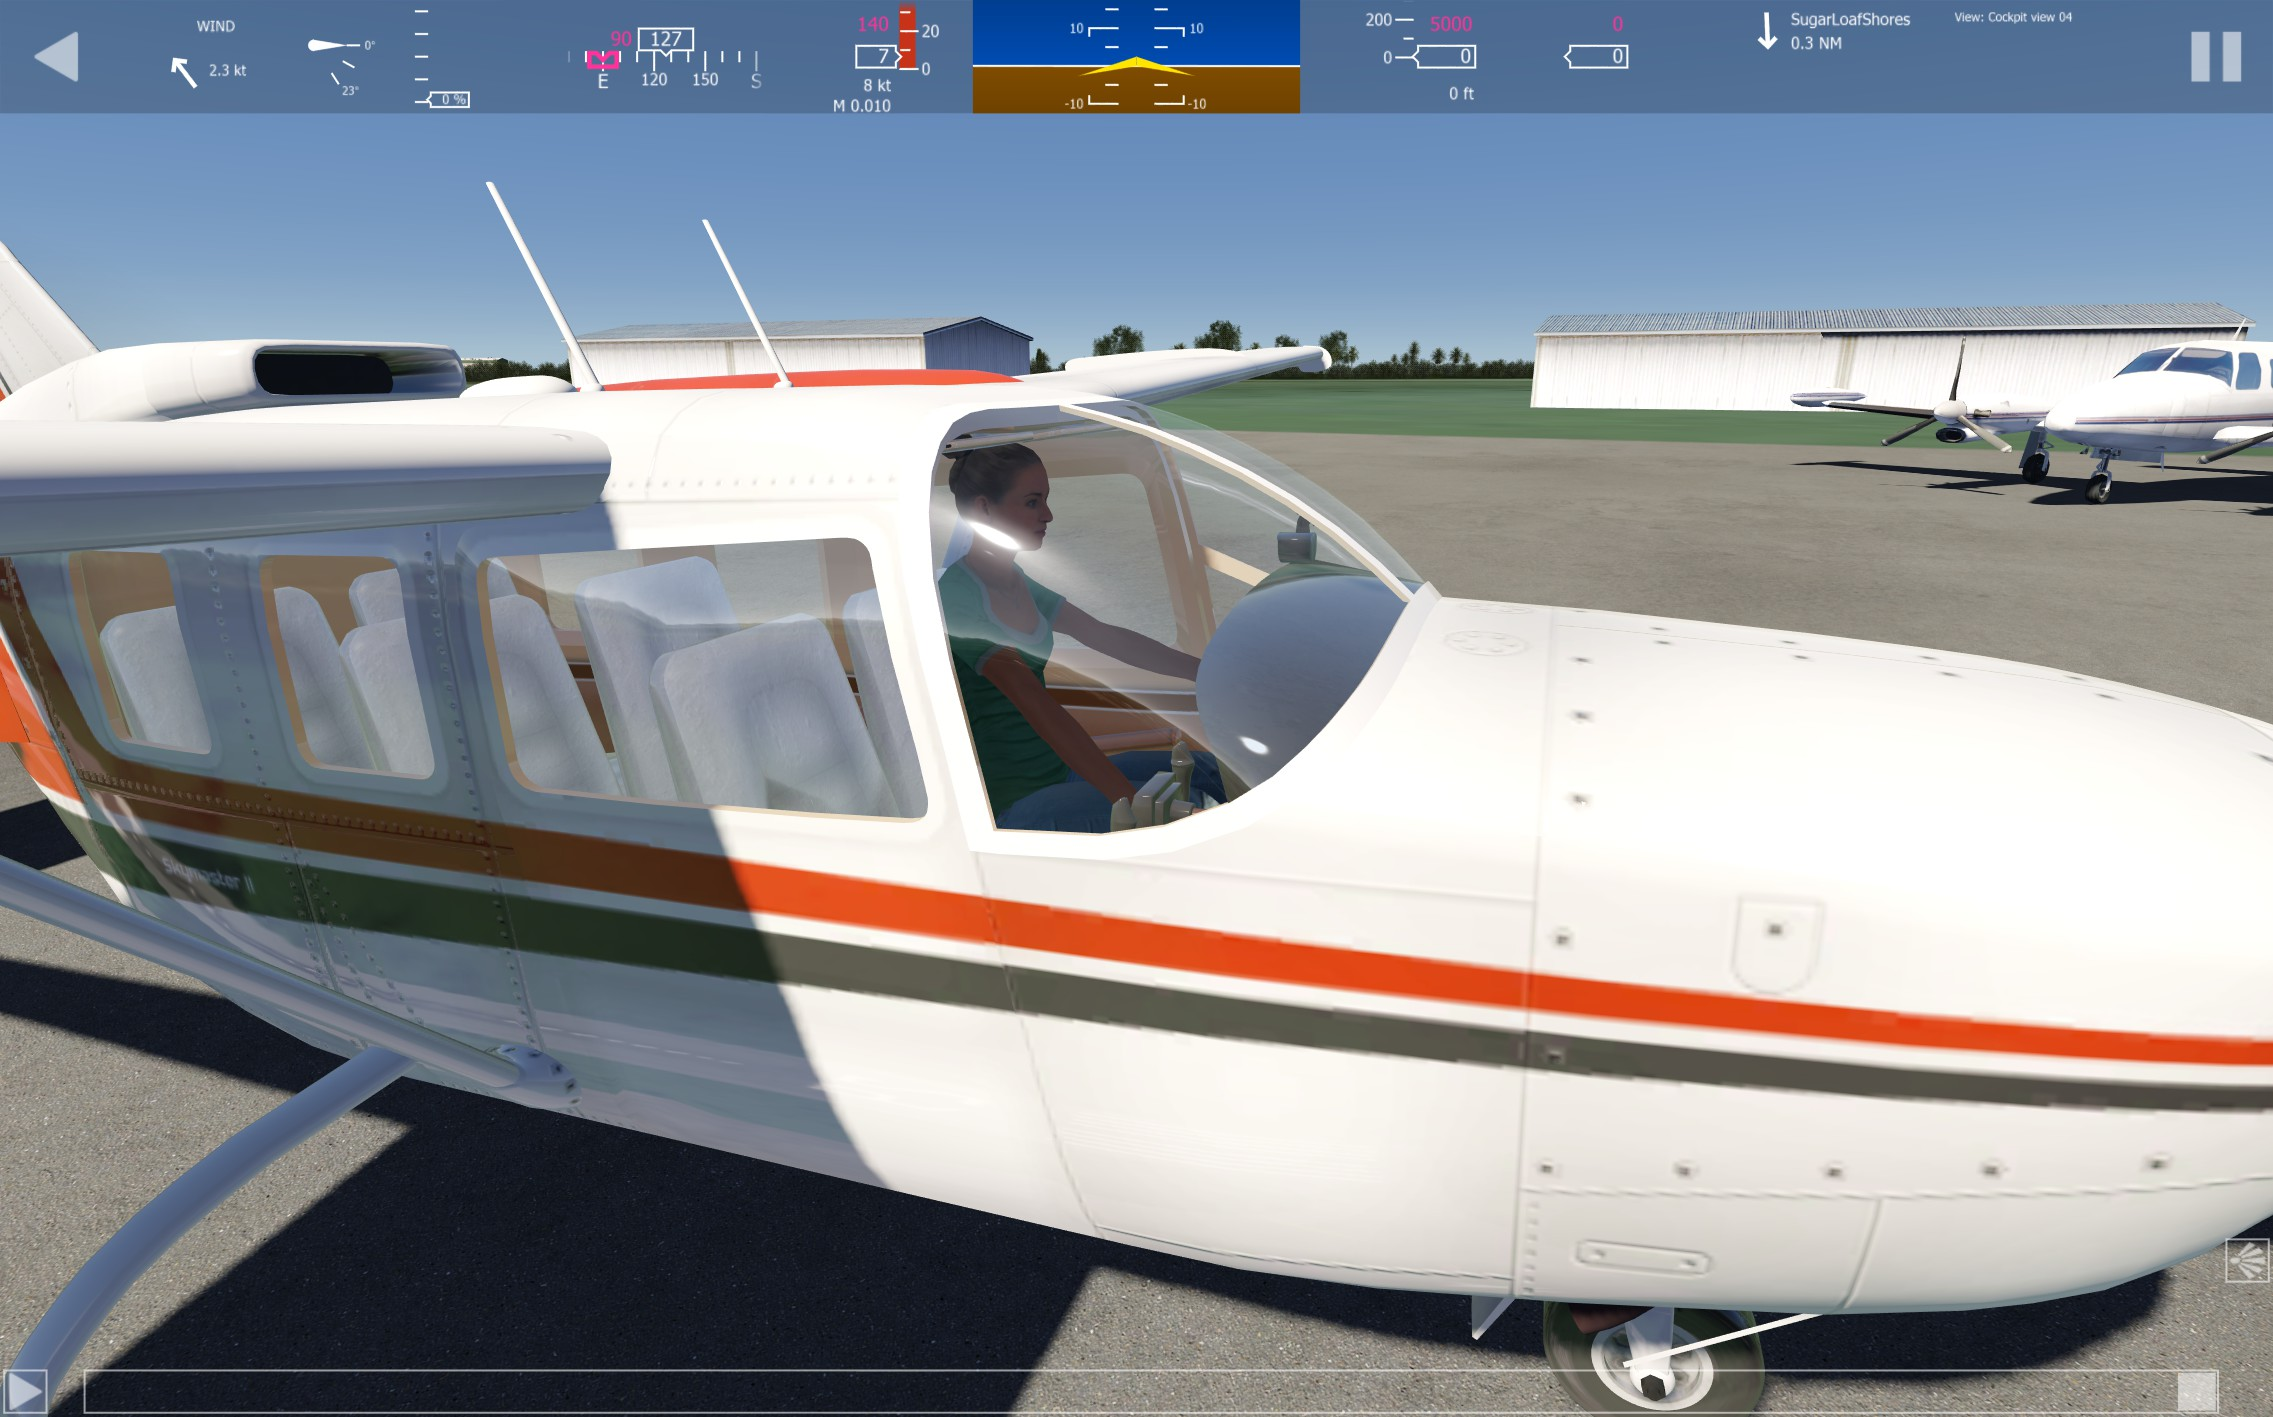 Early look at Cessna 337 Skymaster - Push Pull Twin